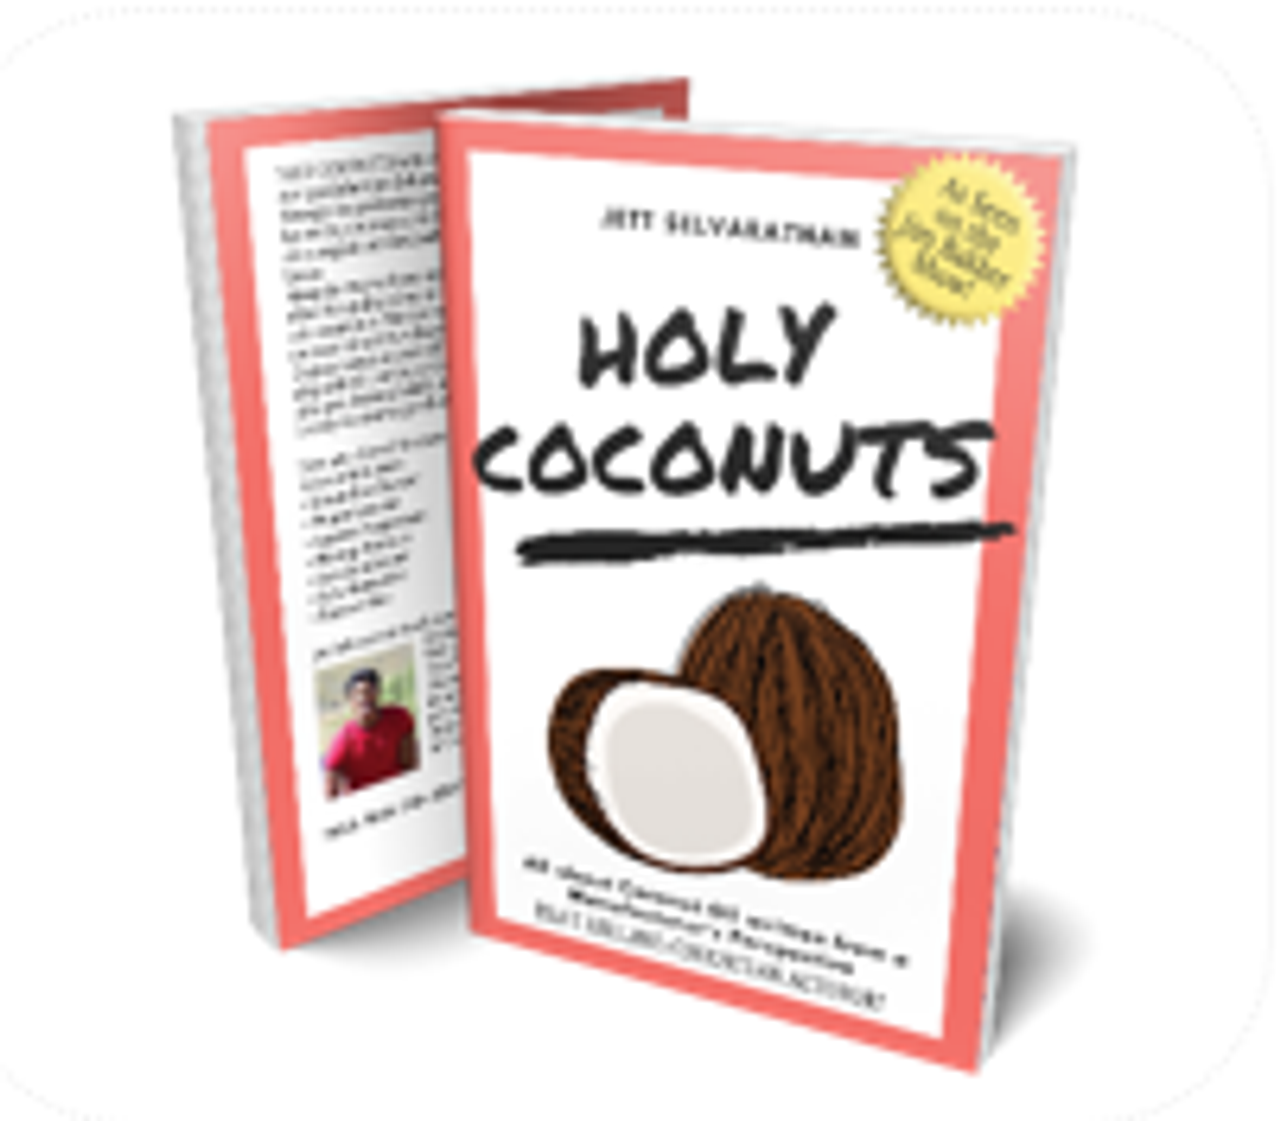 Holy Coconut, a Book About Coconut Oil and it's many uses.